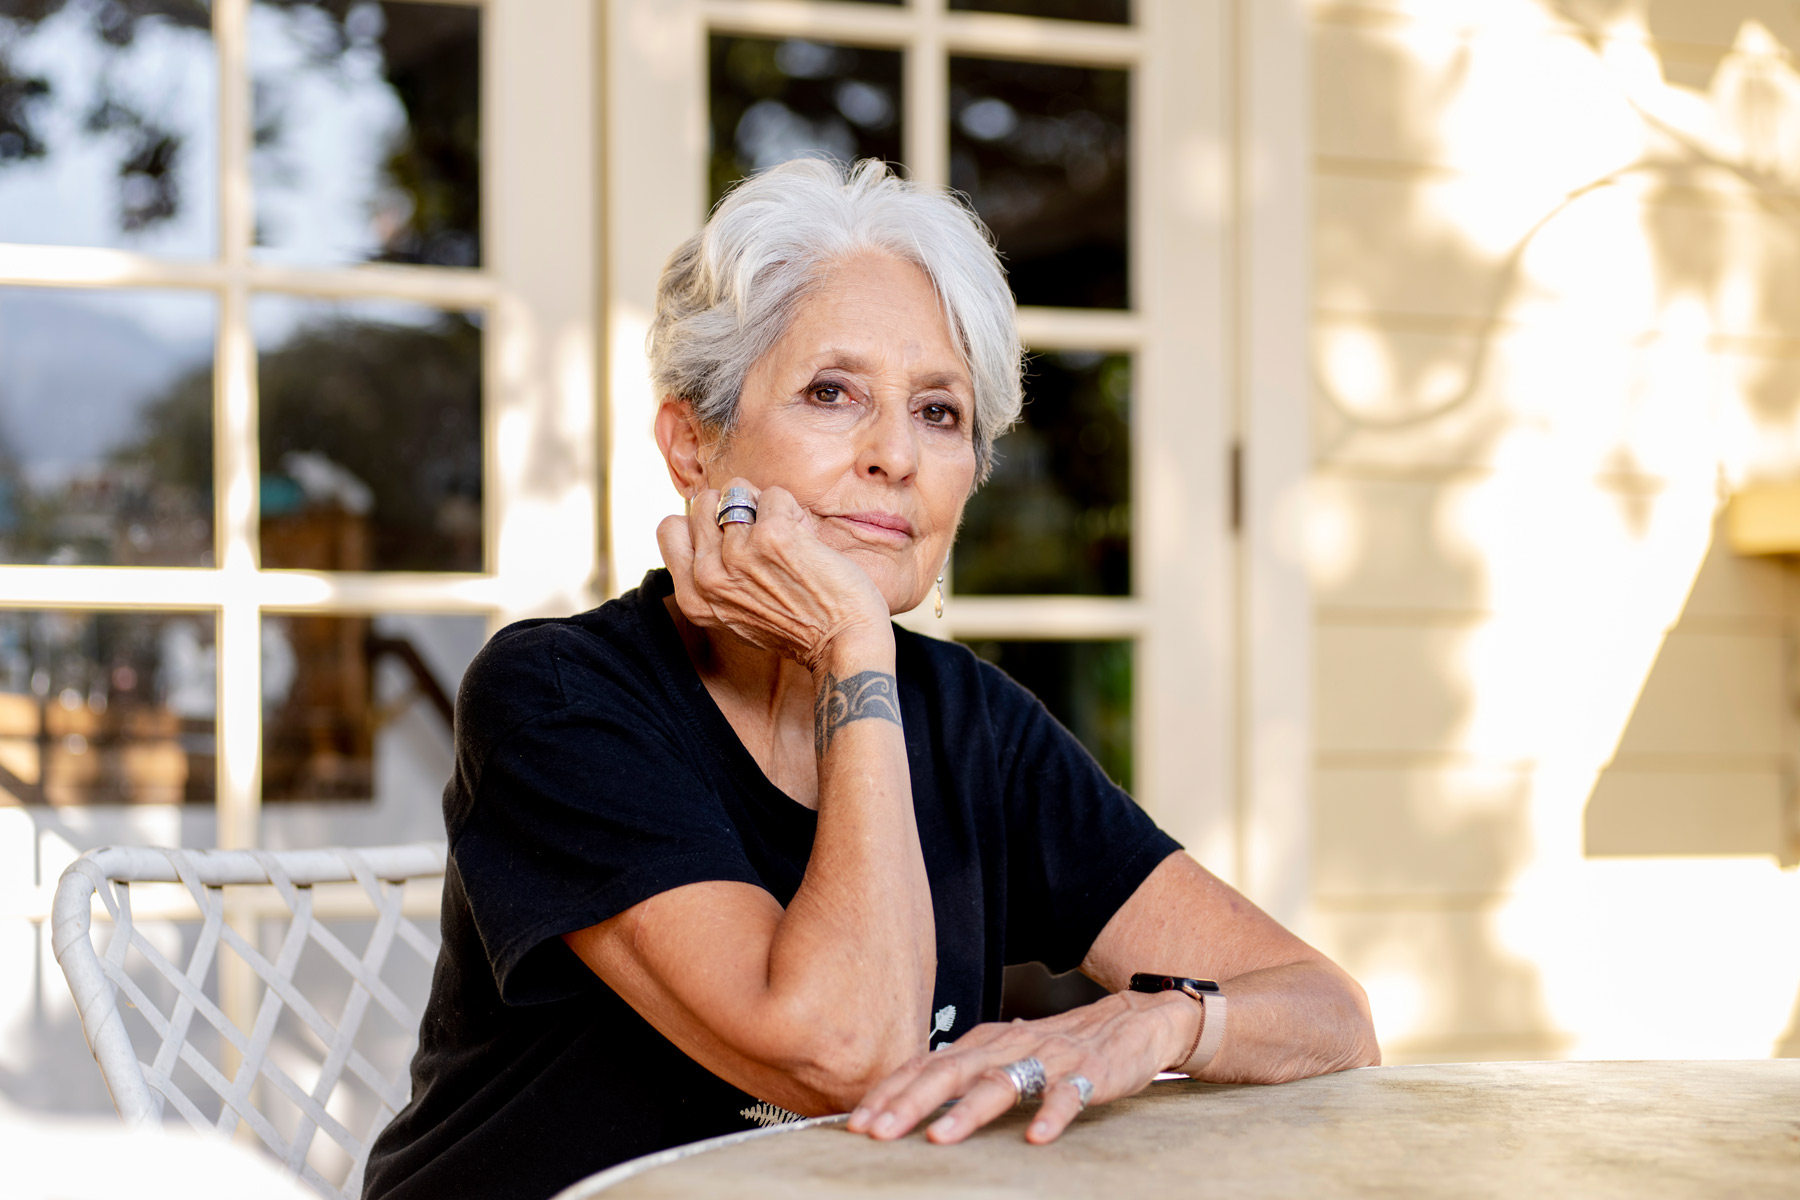 Joan Baez On The 2020 Election Painting Portraits Rolling Stone